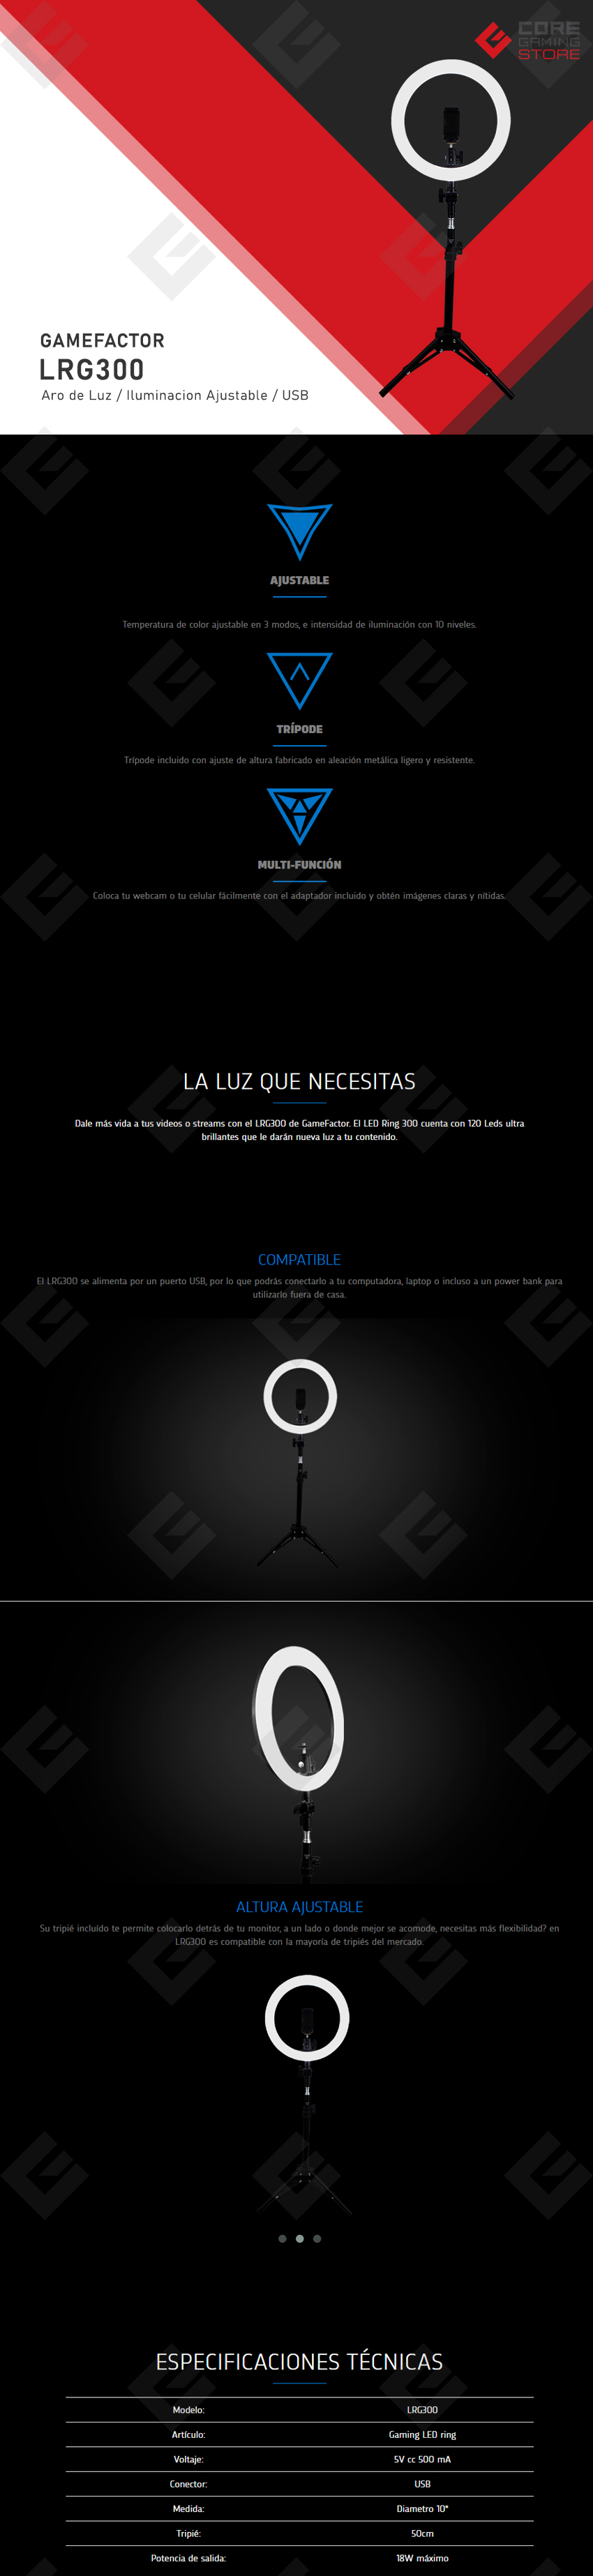 Aro De Luz GameFactor LRG300, 30cm, Streaming, Calido y frio, Ajustable, USB